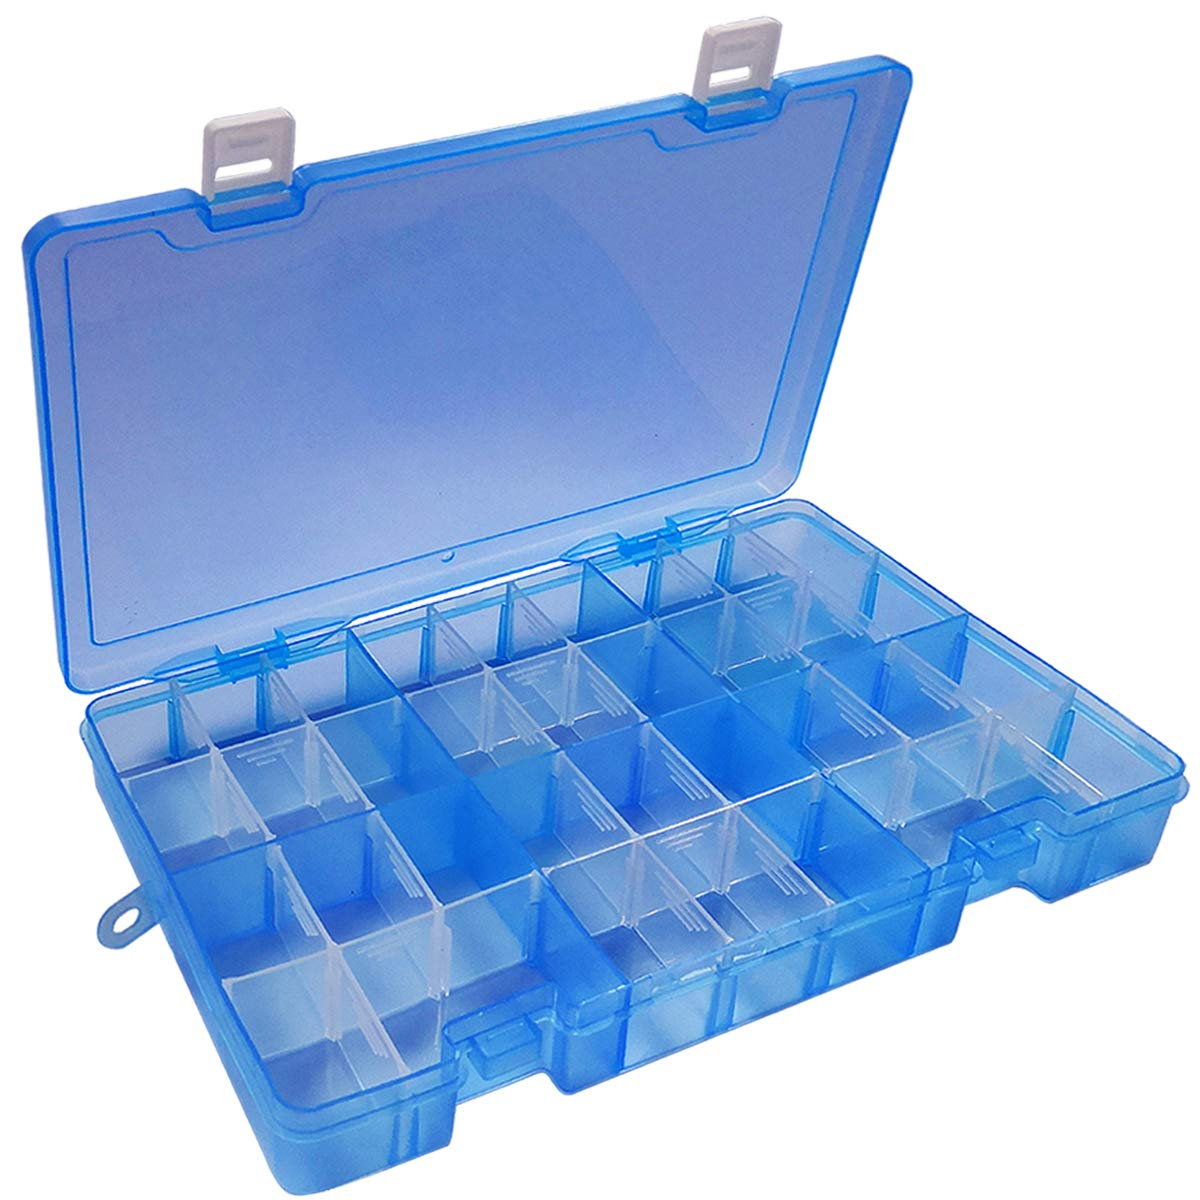 White 36 Grids DUOFIRE Plastic Organizer Container Storage Box Adjustable Divider Removable Grid Compartment Big Clear Slot box For Jewelry Beads Earring Container Tool Fishing Hook Small Accessories